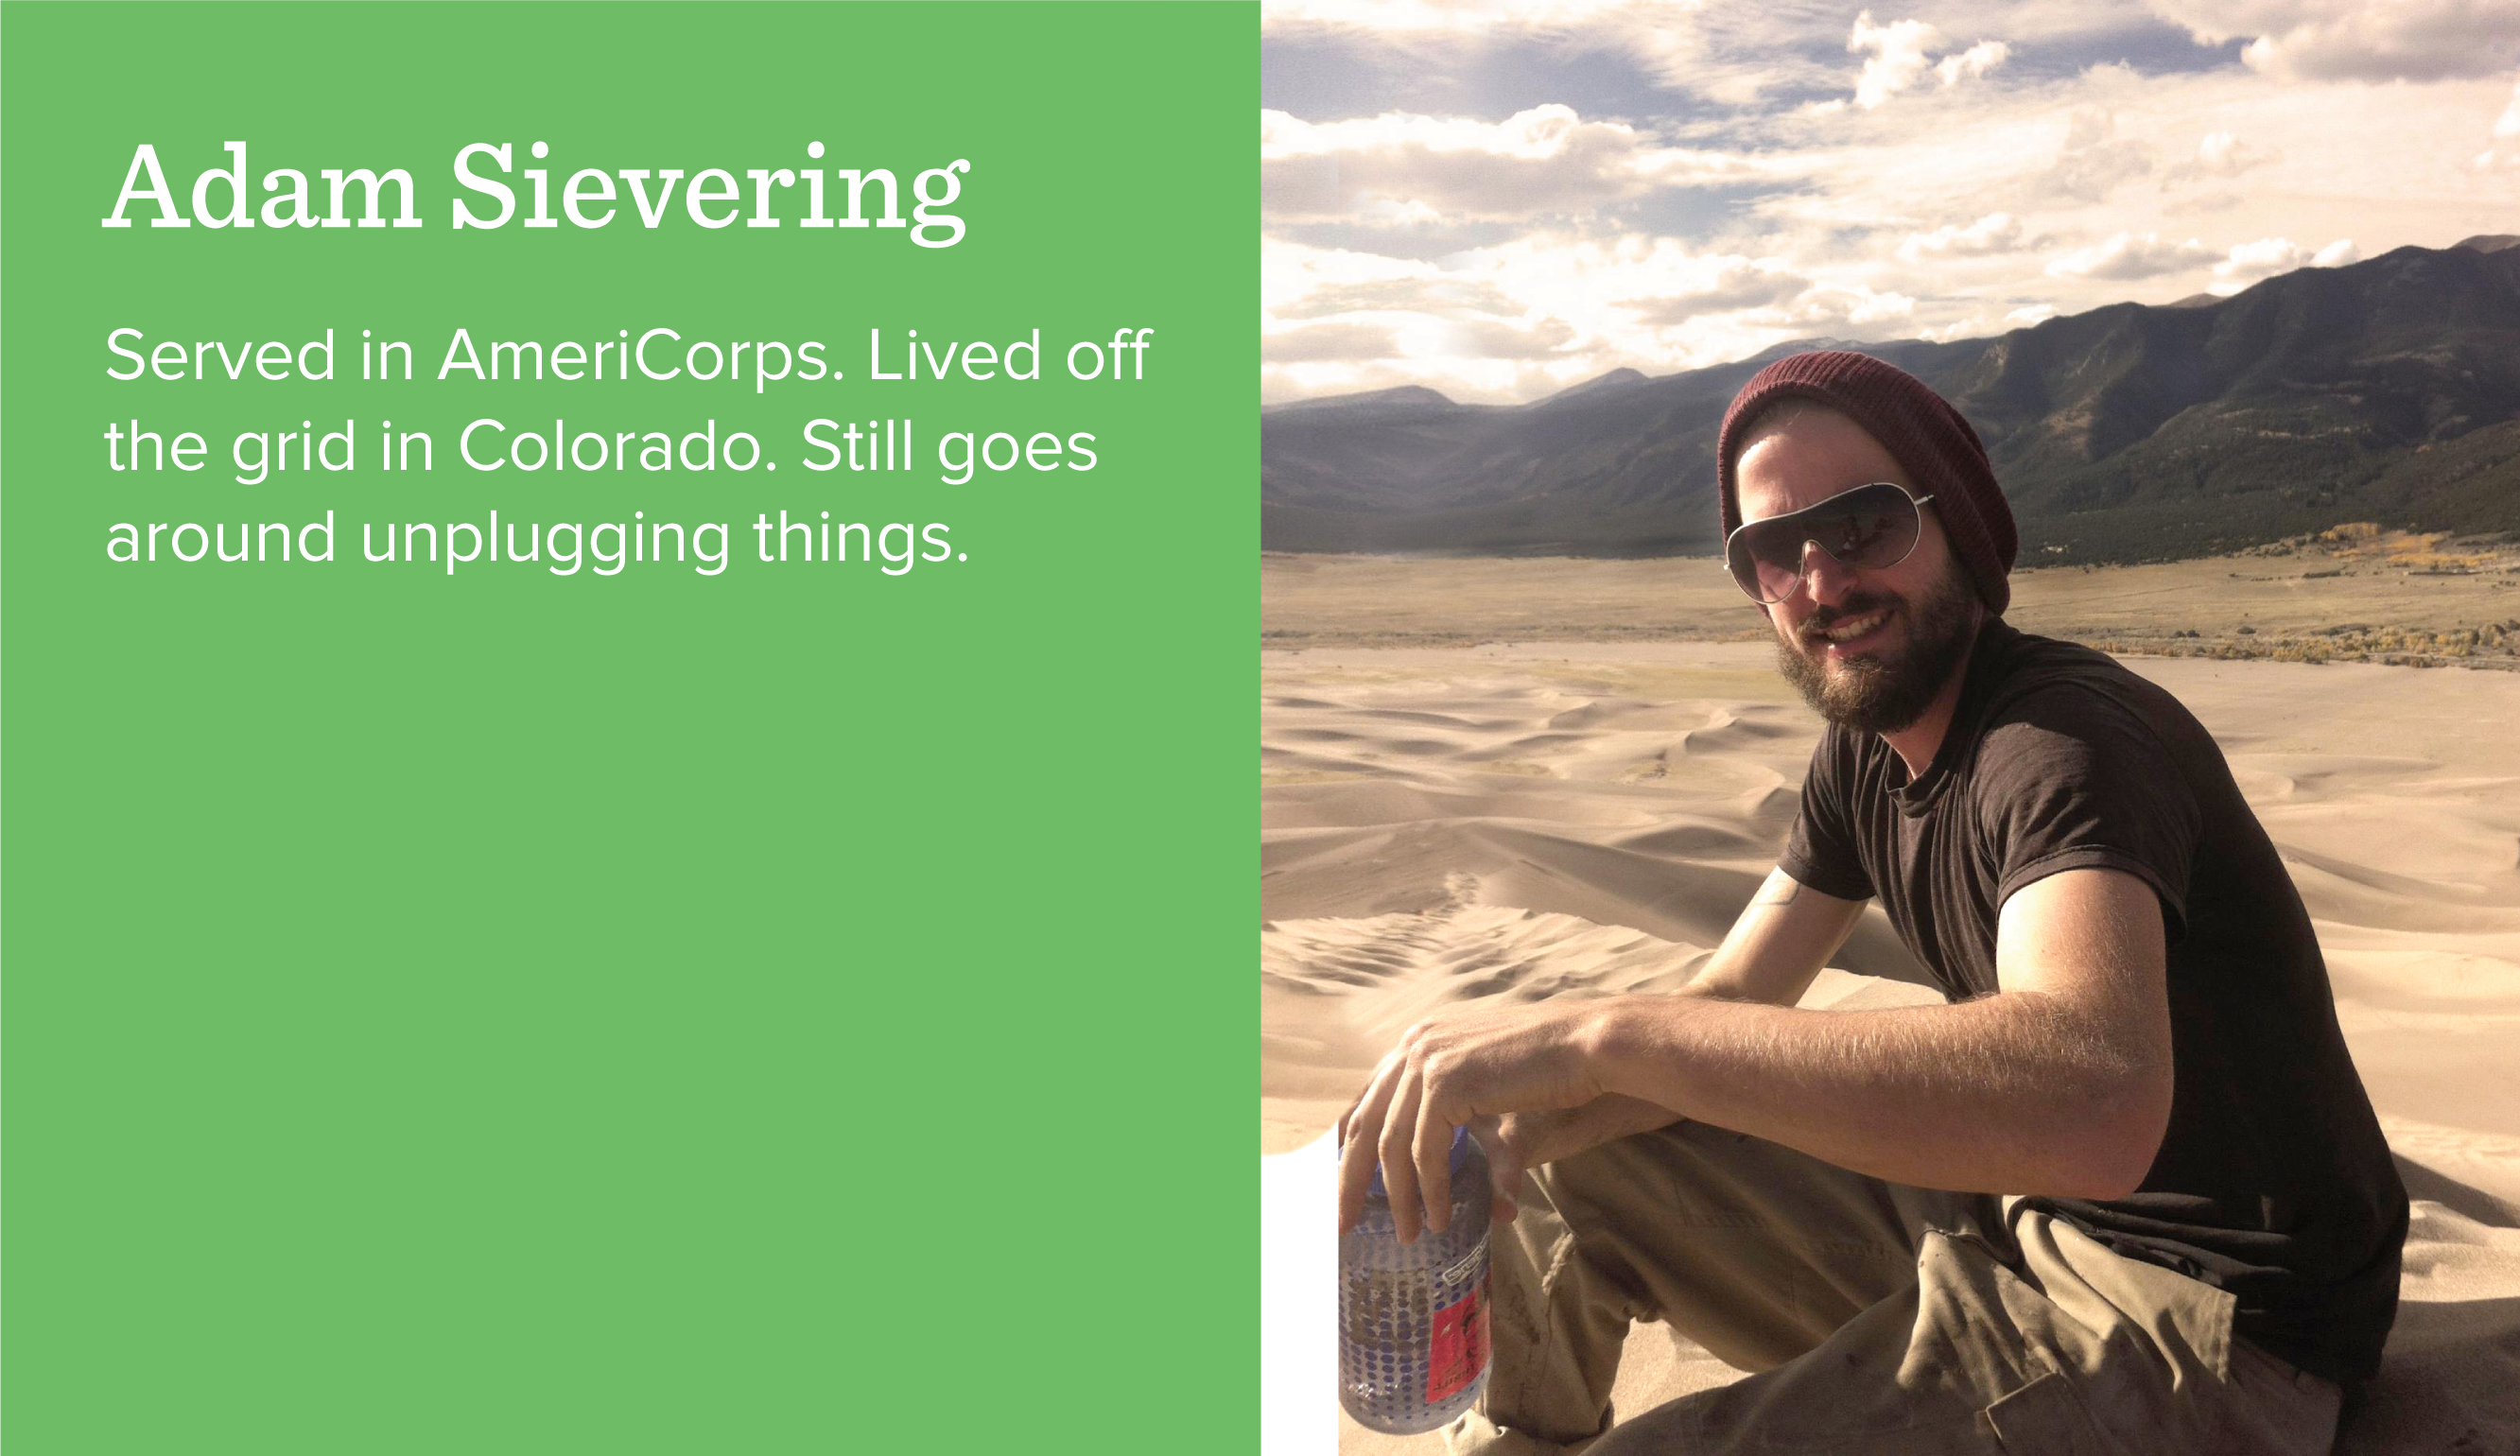 Adam Sievering. Served in AmeriCorps. Lived off the grid in Colorado. Still goes around unplugging things.